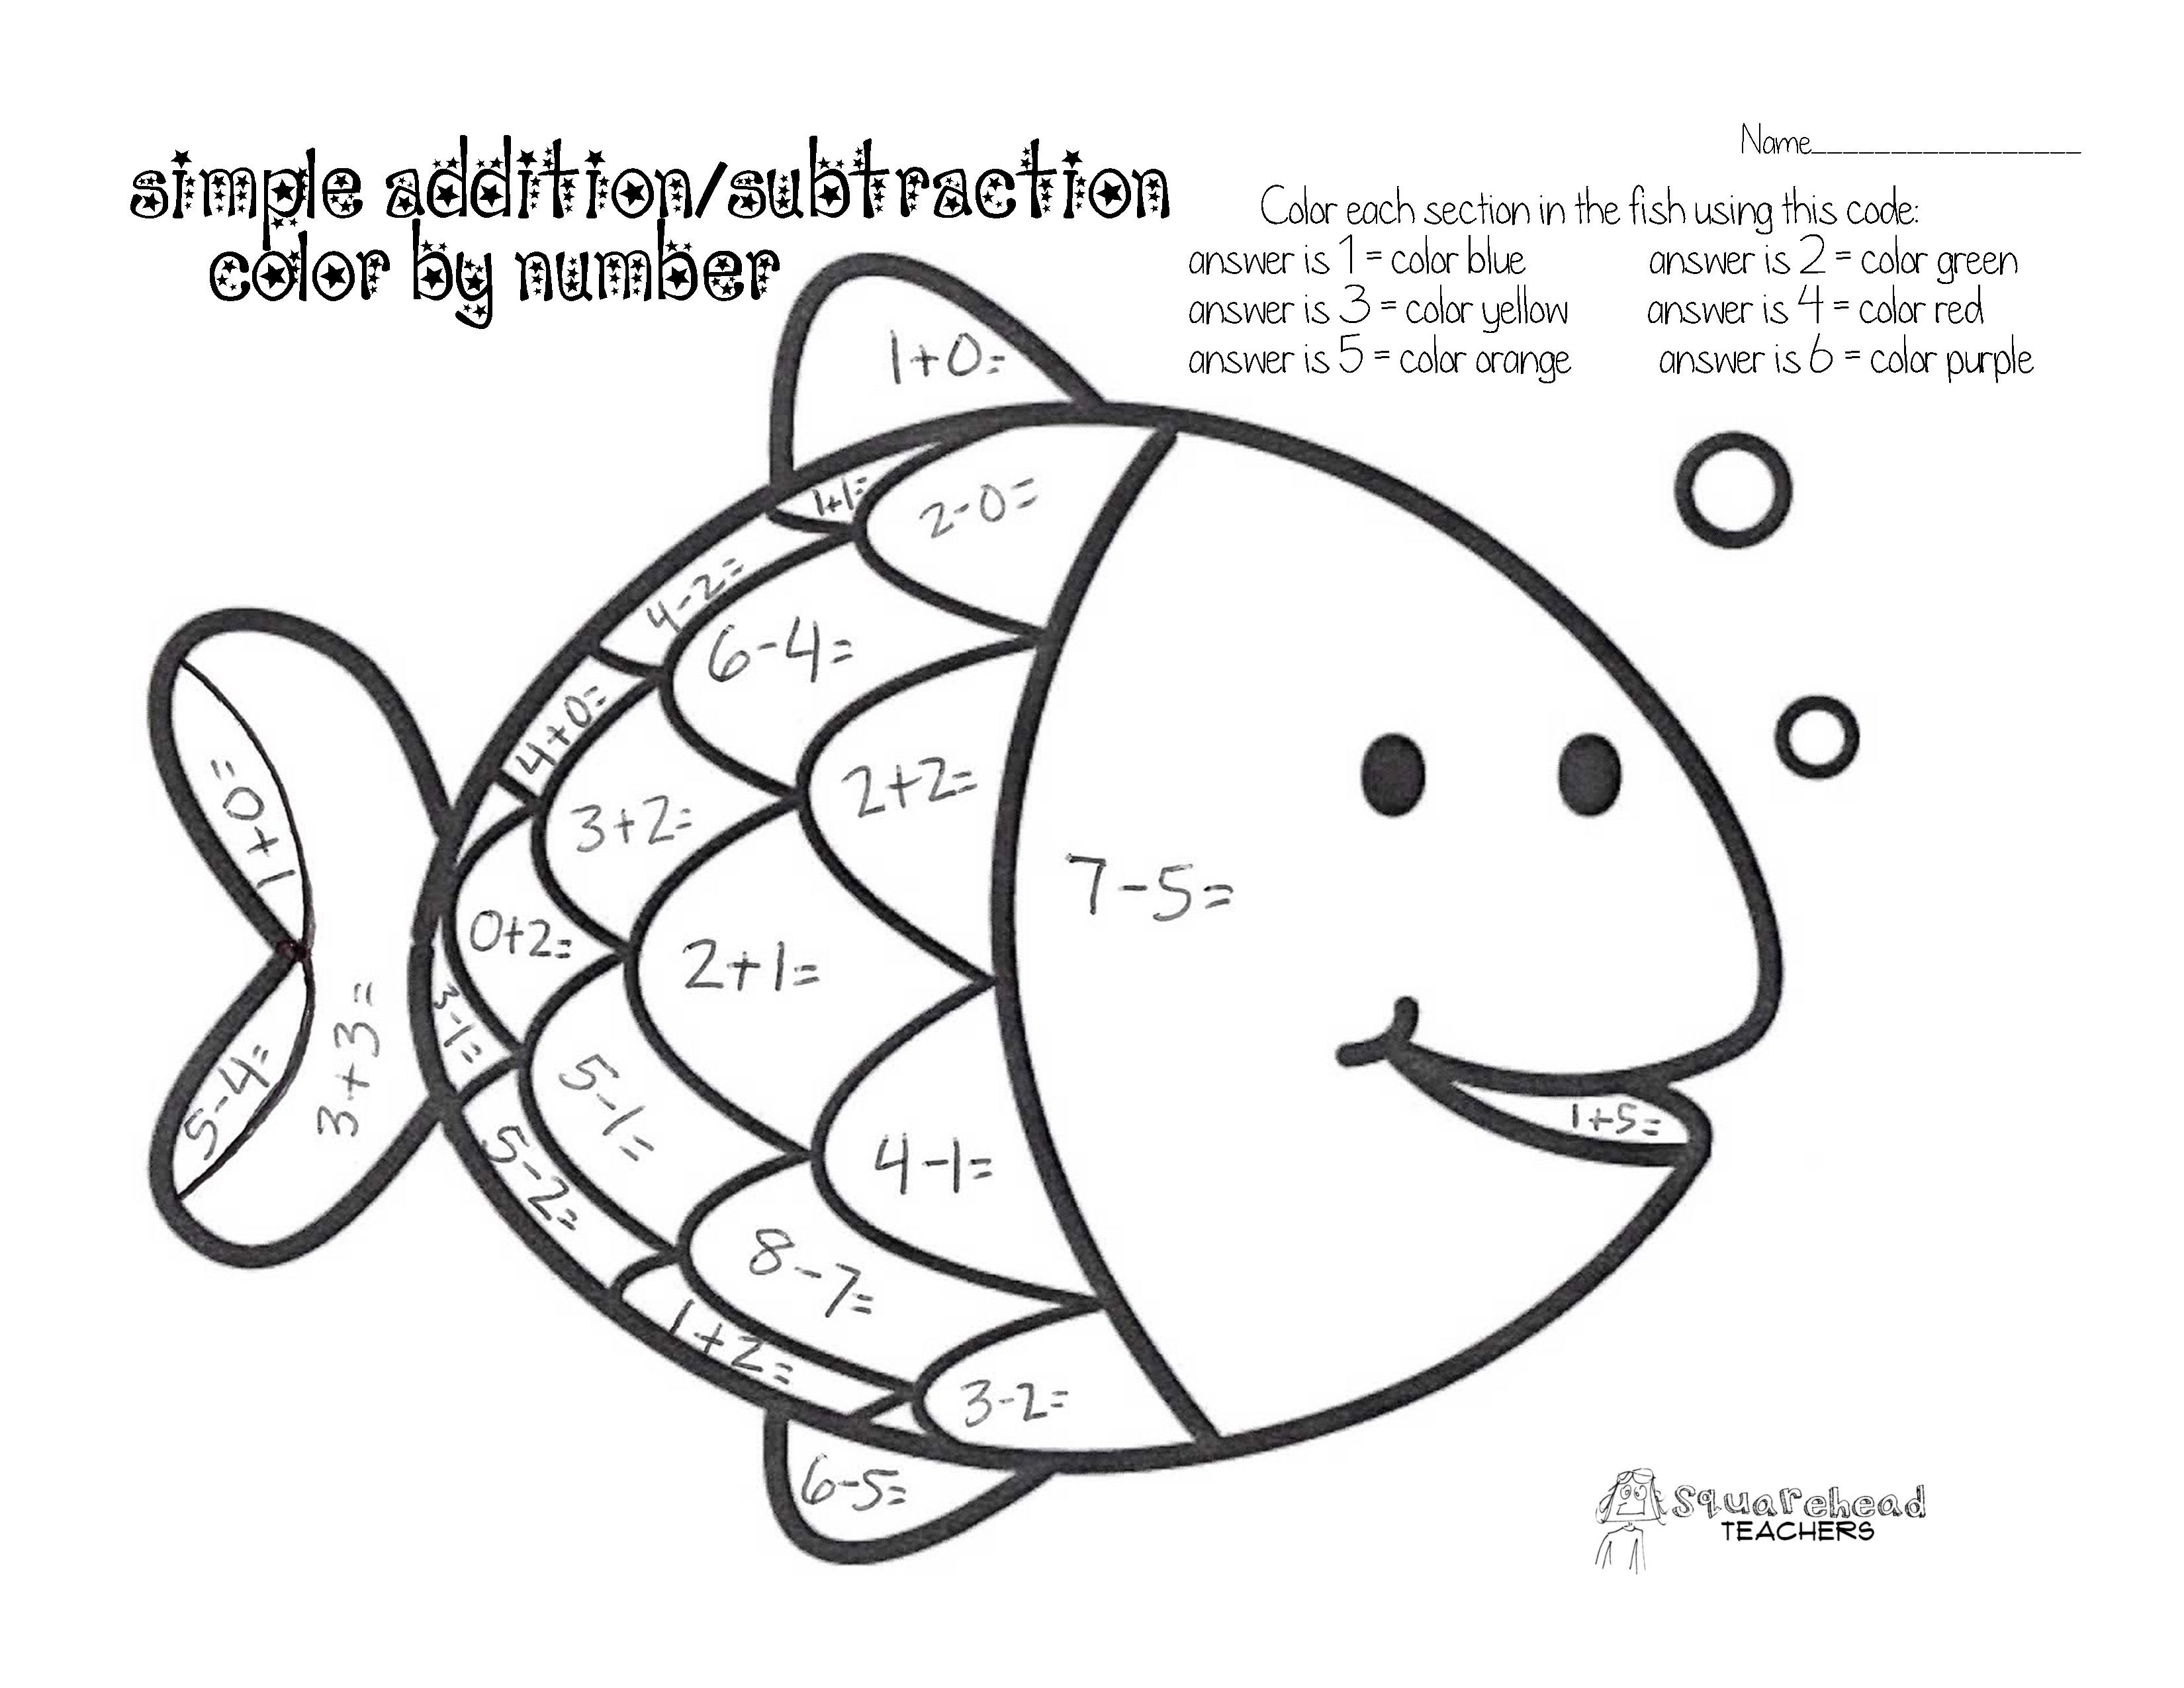 coloring sheets with numbers christmas color by numbers best coloring pages for kids numbers sheets with coloring